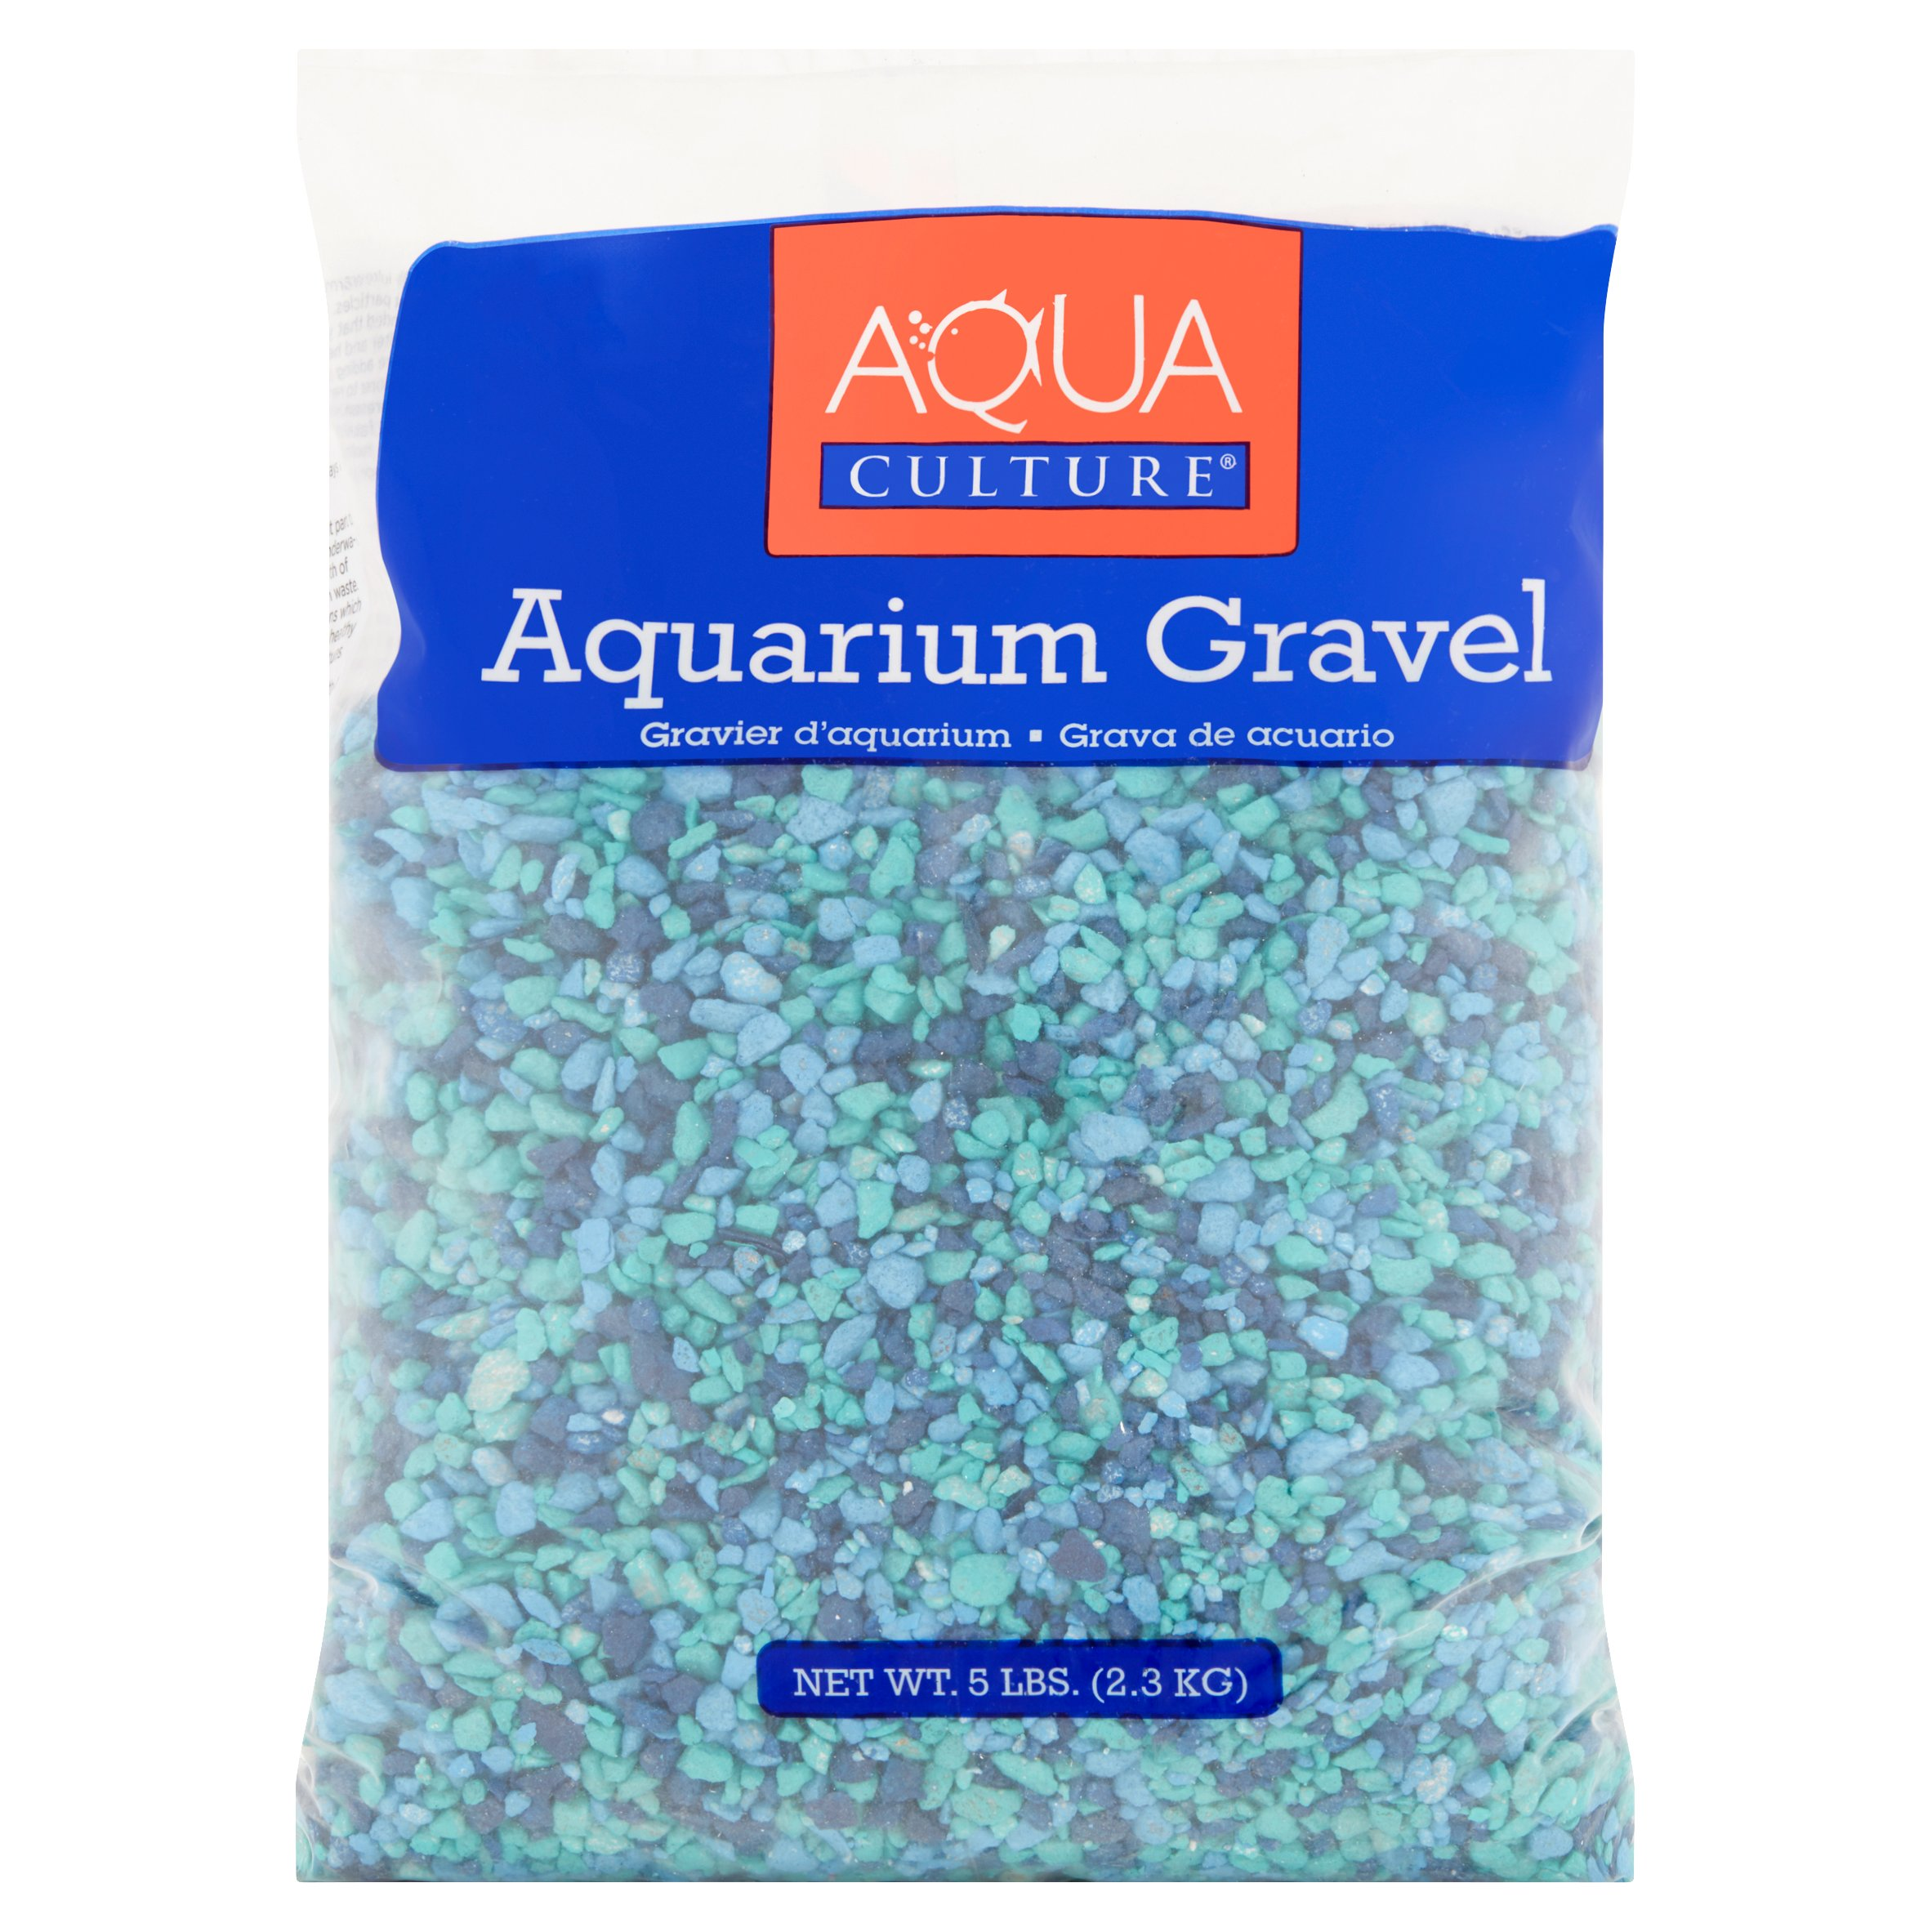 Aqua Culture Aquarium Gravel, Blue, 5 lb capacity